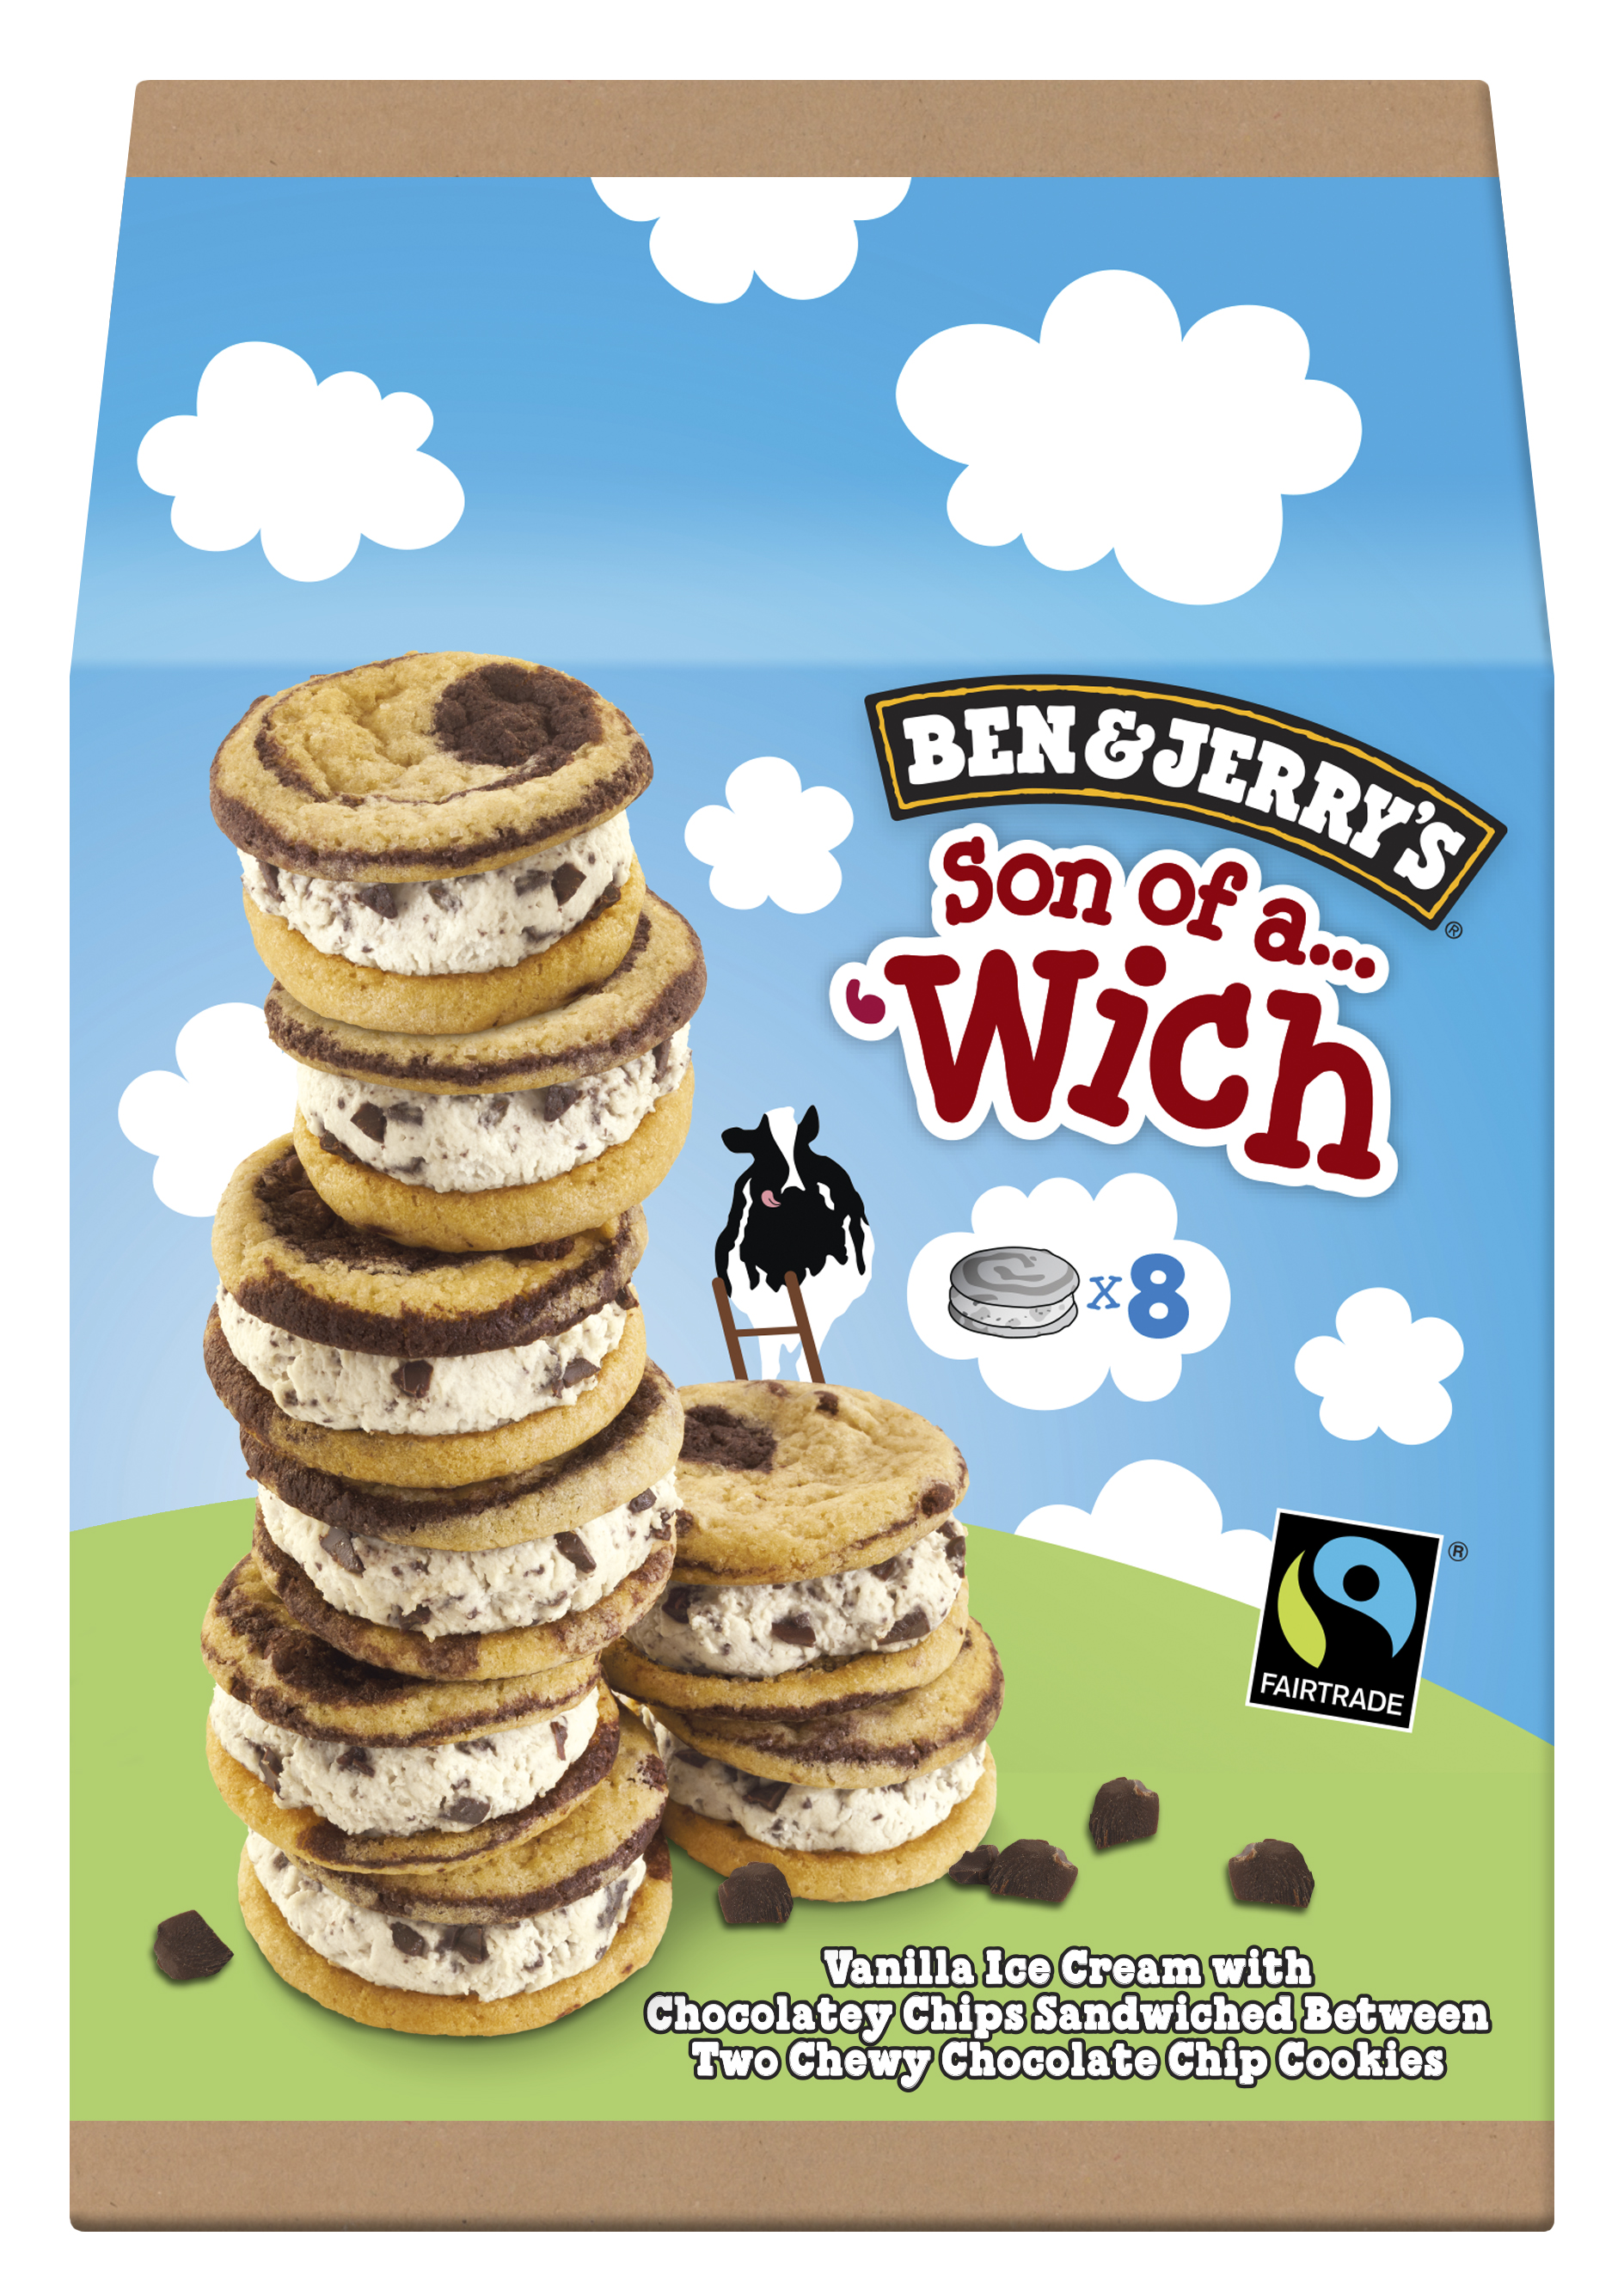 BenJerry_Son_of_Wich.jpg